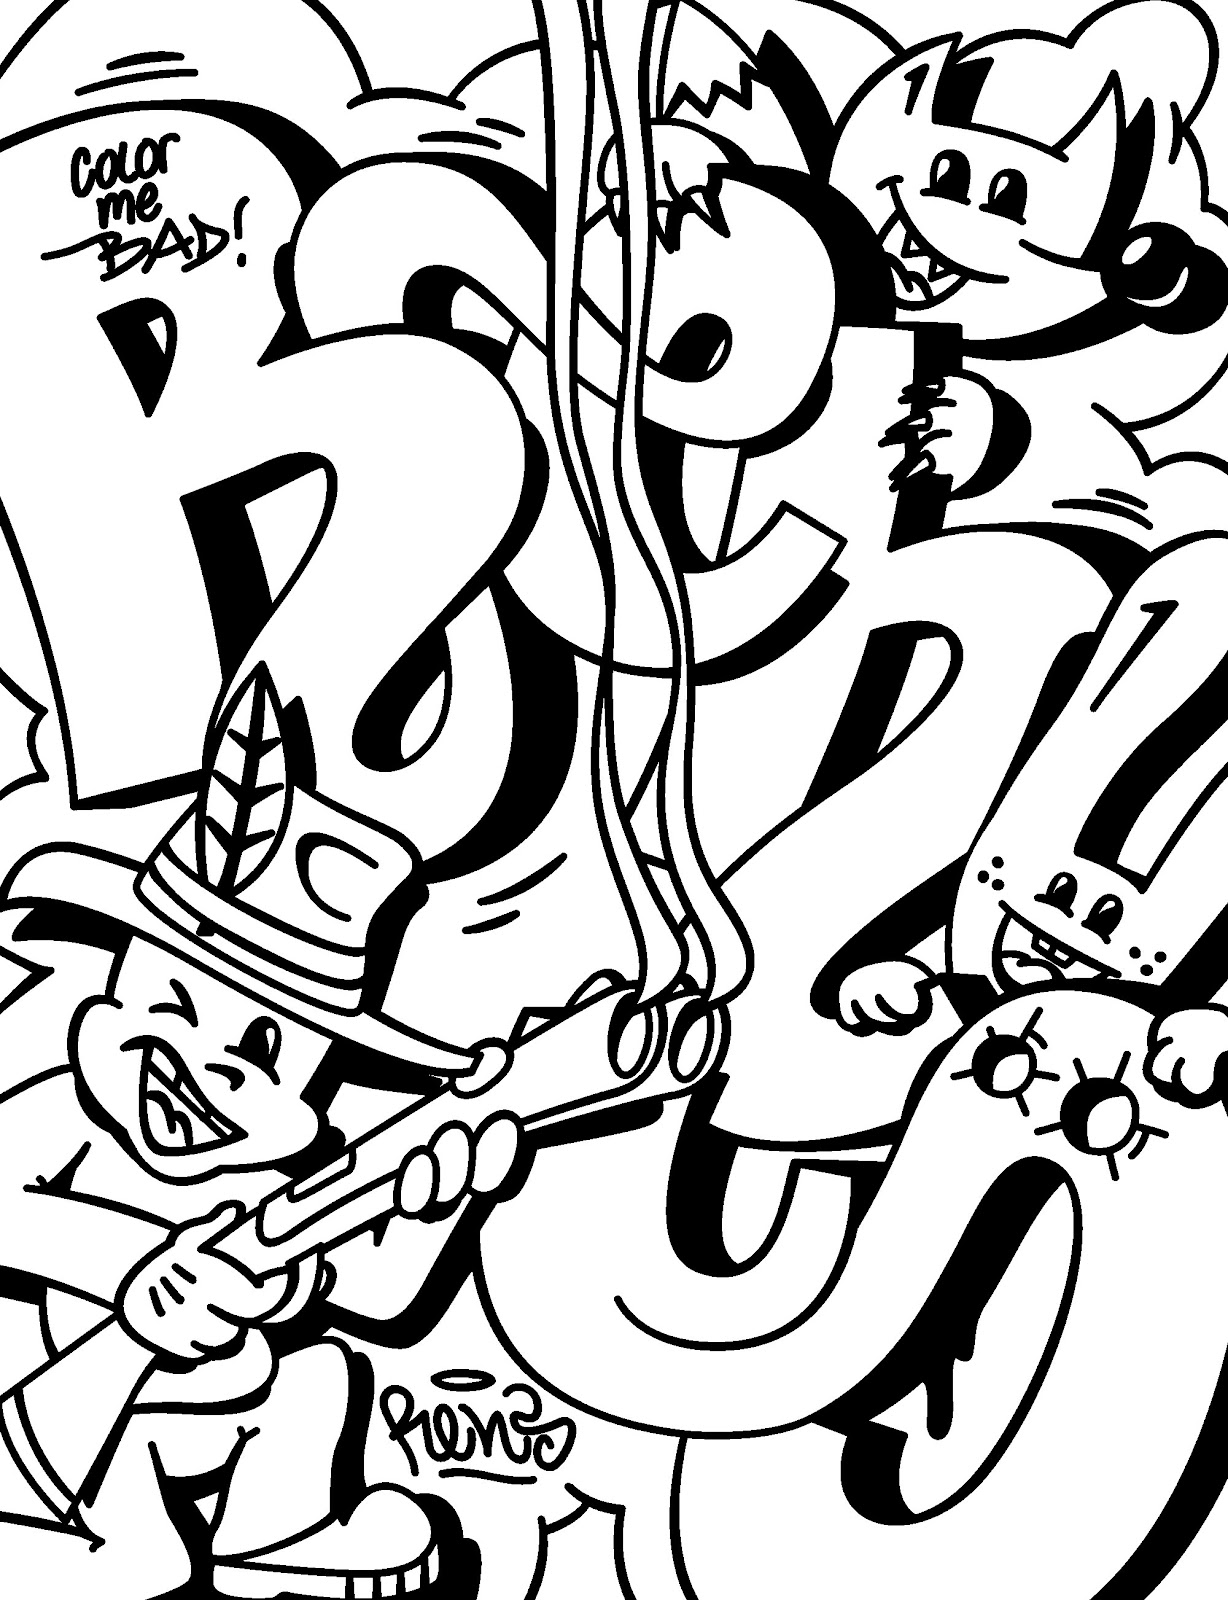 Best 15 Cool Graffiti Coloring Pages Free